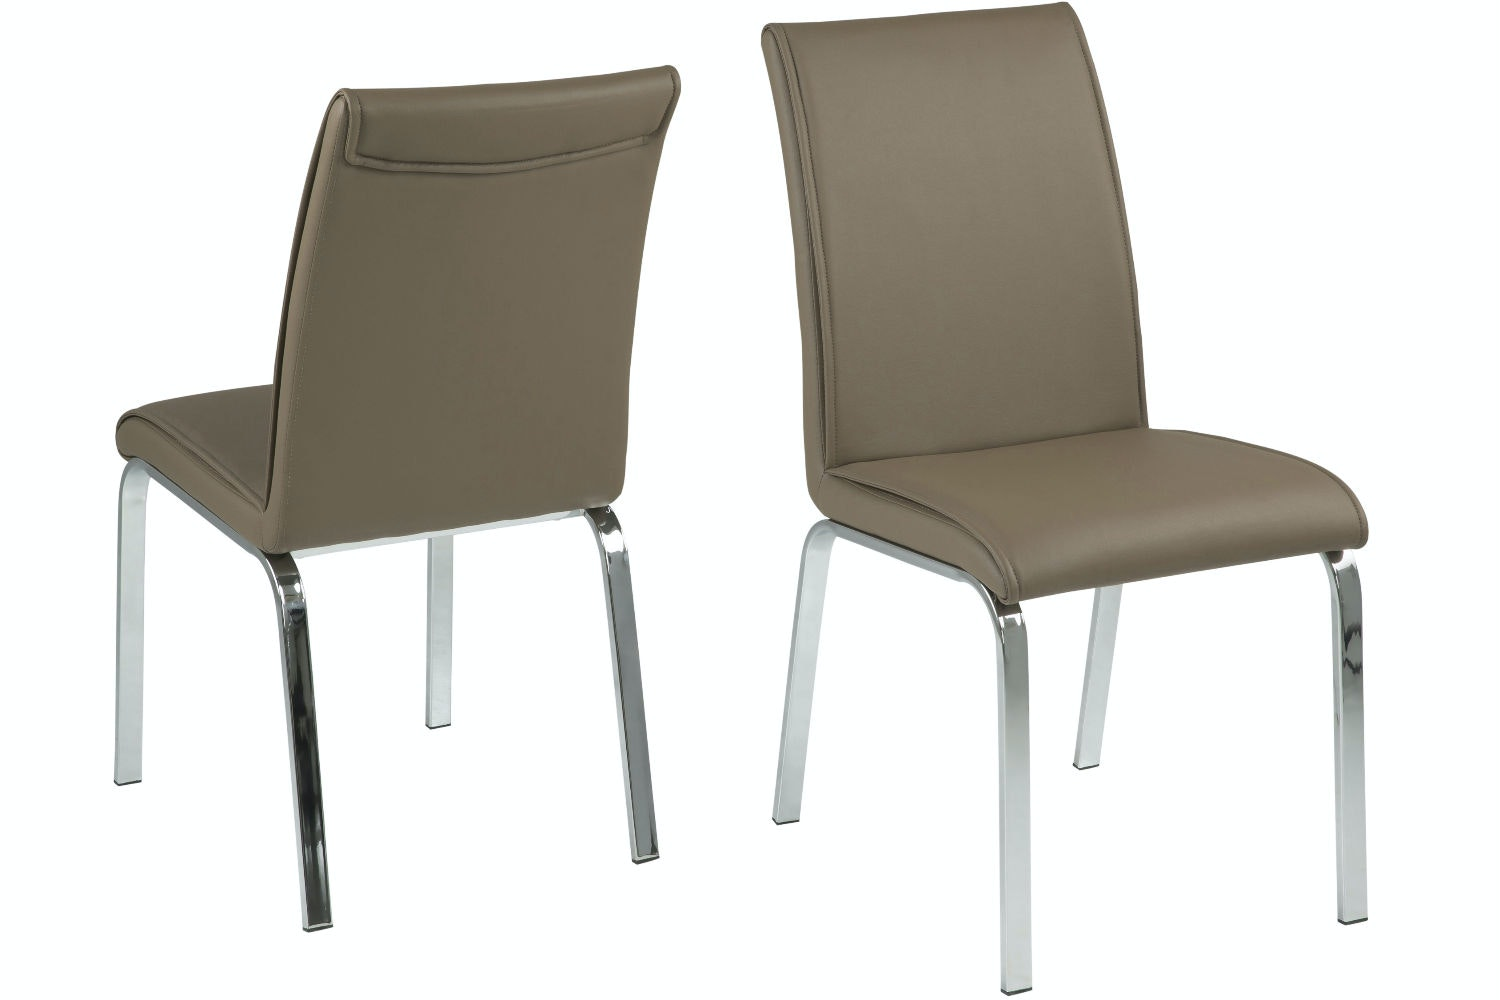 Lennox 7 Piece Dining Set | Leonora Dining Chairs Cappuccino